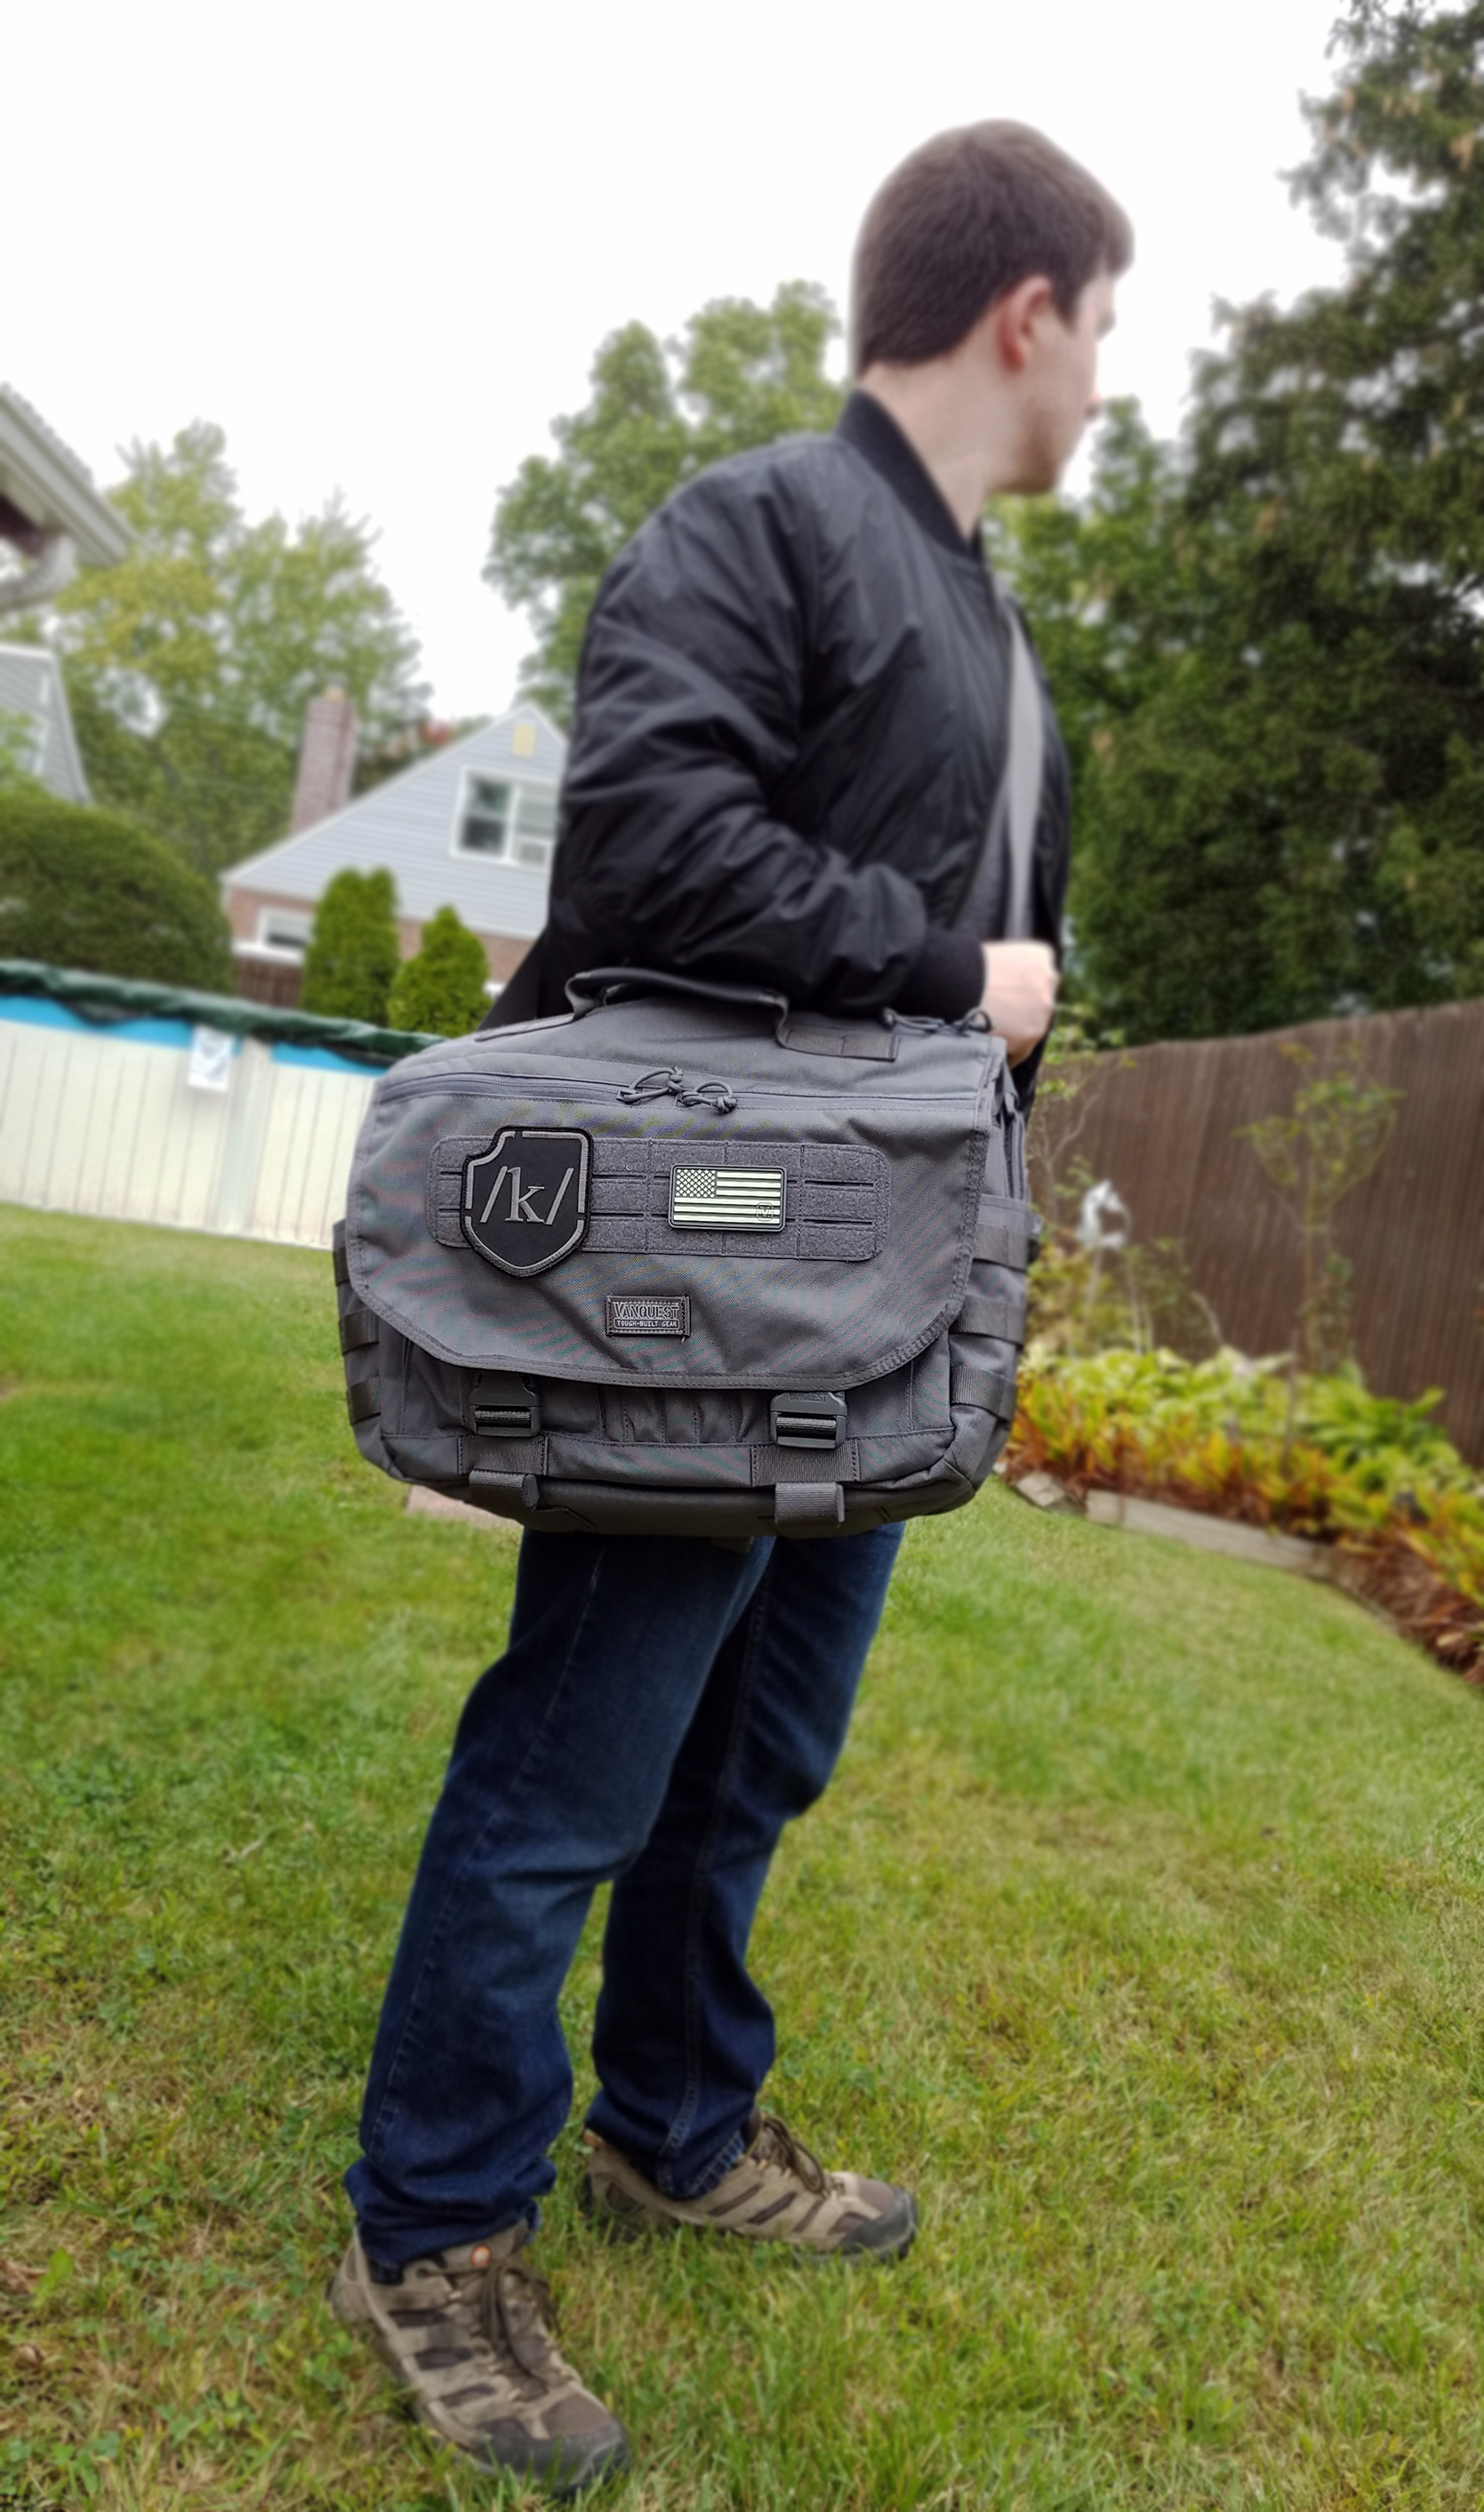 1c8c9569b2c2 My initial impression of messenger bags was that they typically fit a few  flat items for light every day carry. The ENVOY changed my perspective on  the ...